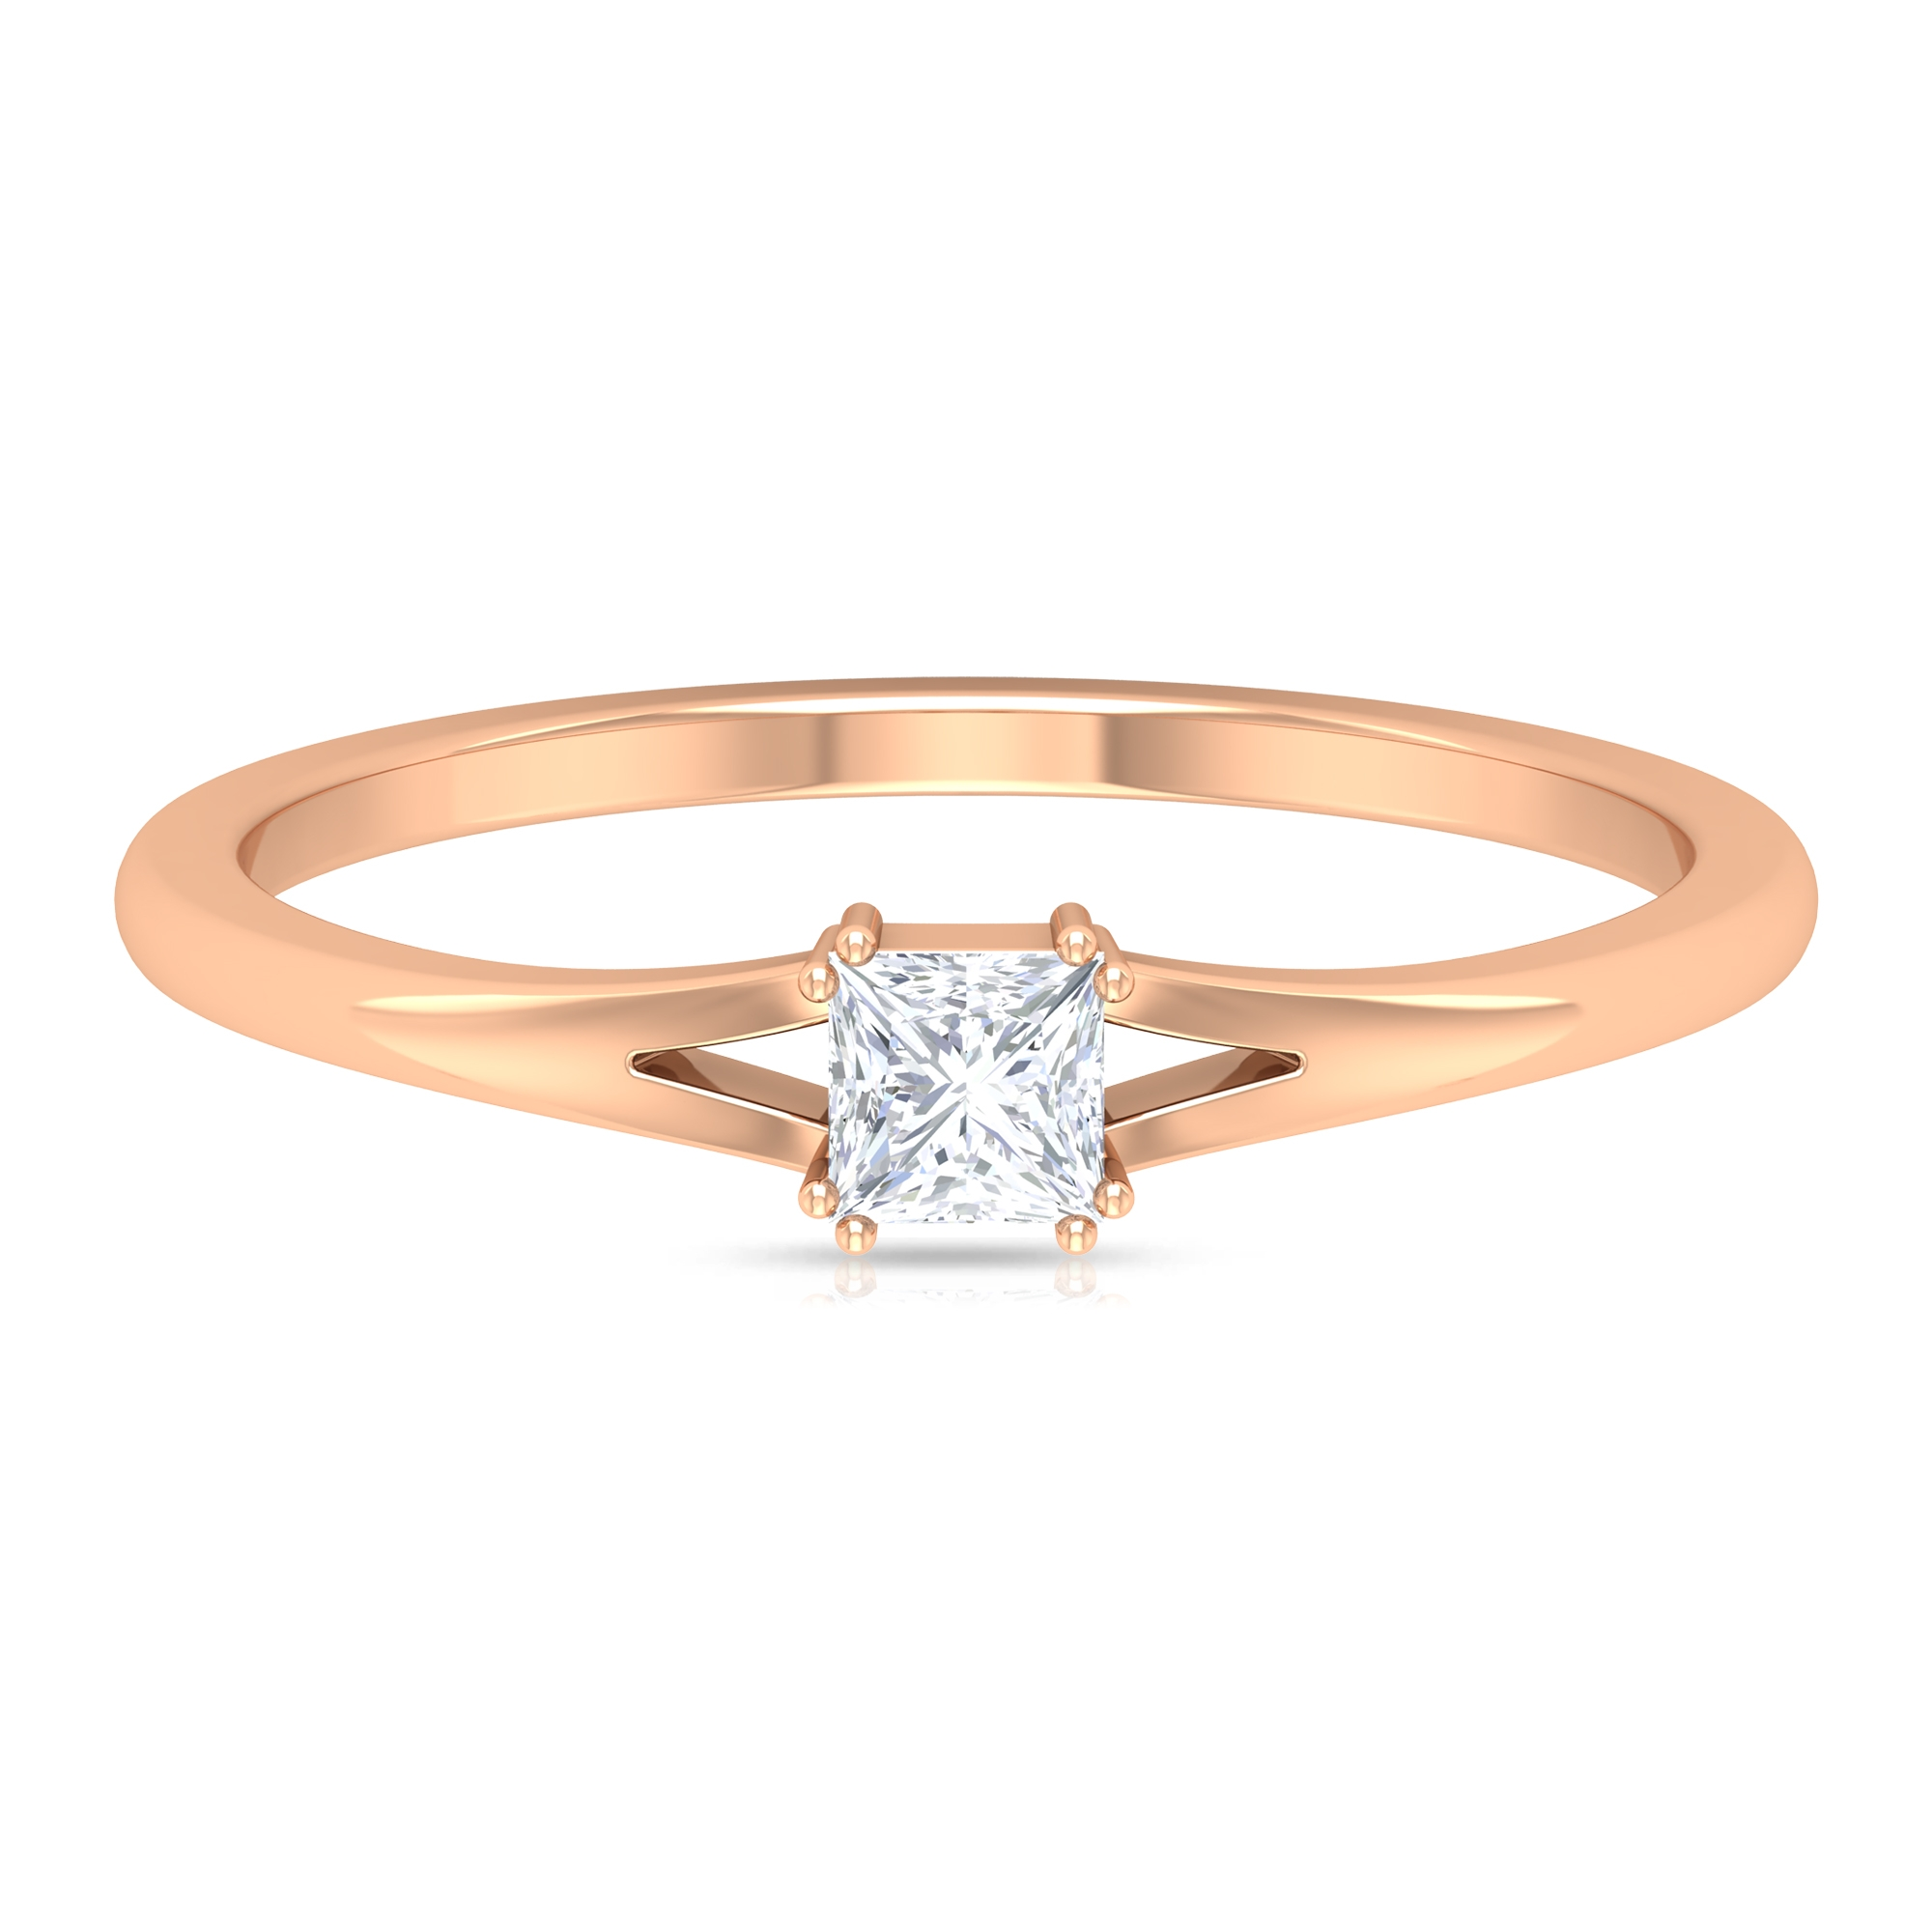 3.3 MM Princess Cut Diamond Solitaire Ring in Double Prong Setting